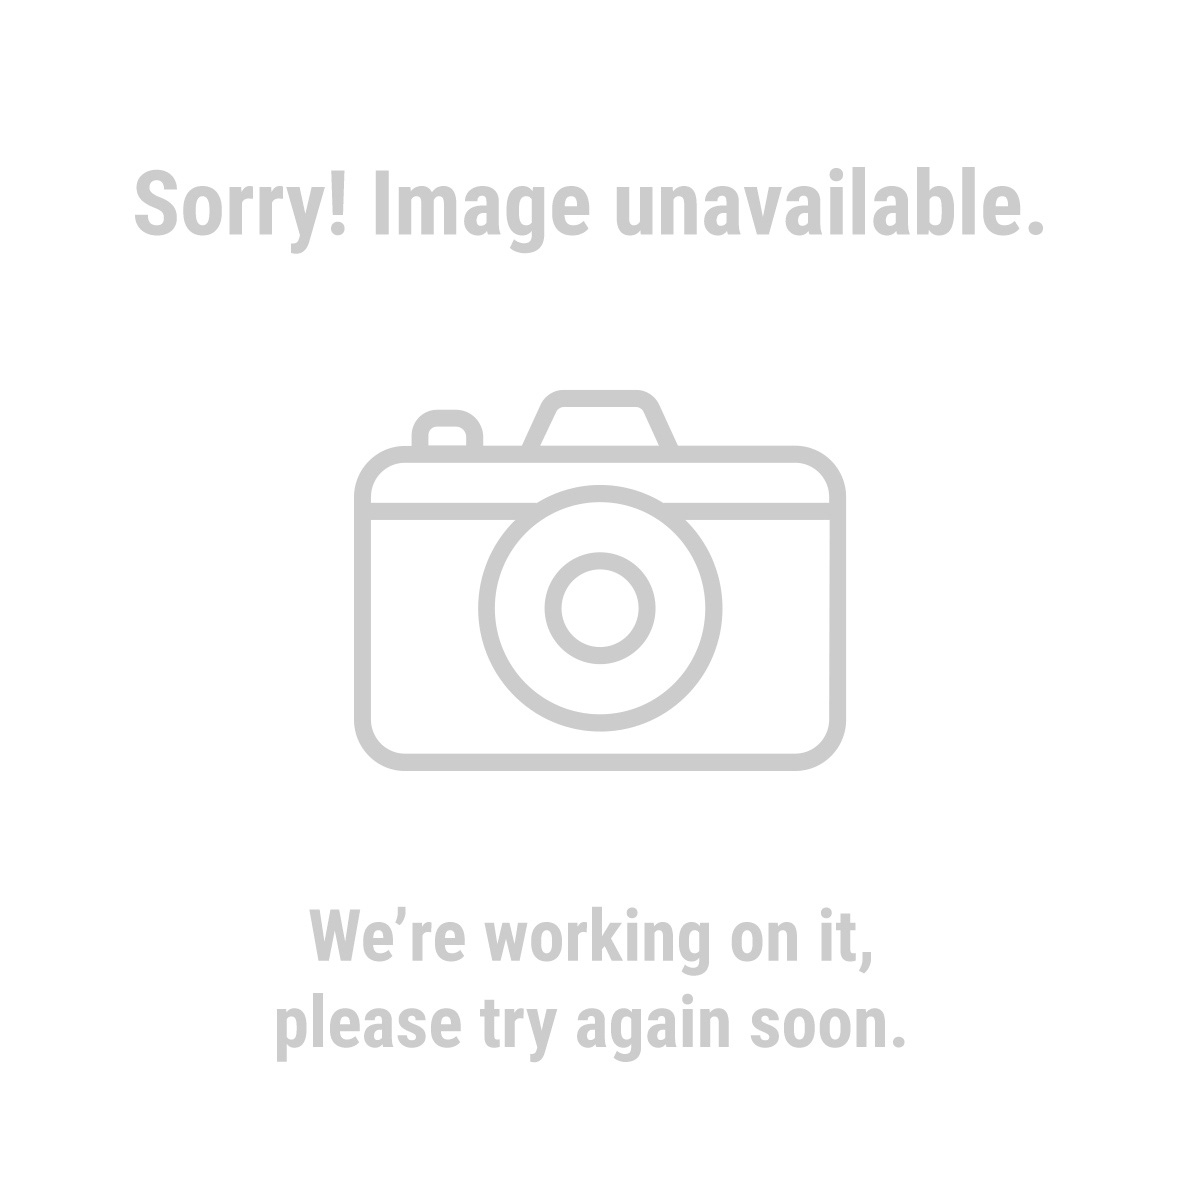 Storehouse® 67655 300 Piece External Retaining Ring Assortment